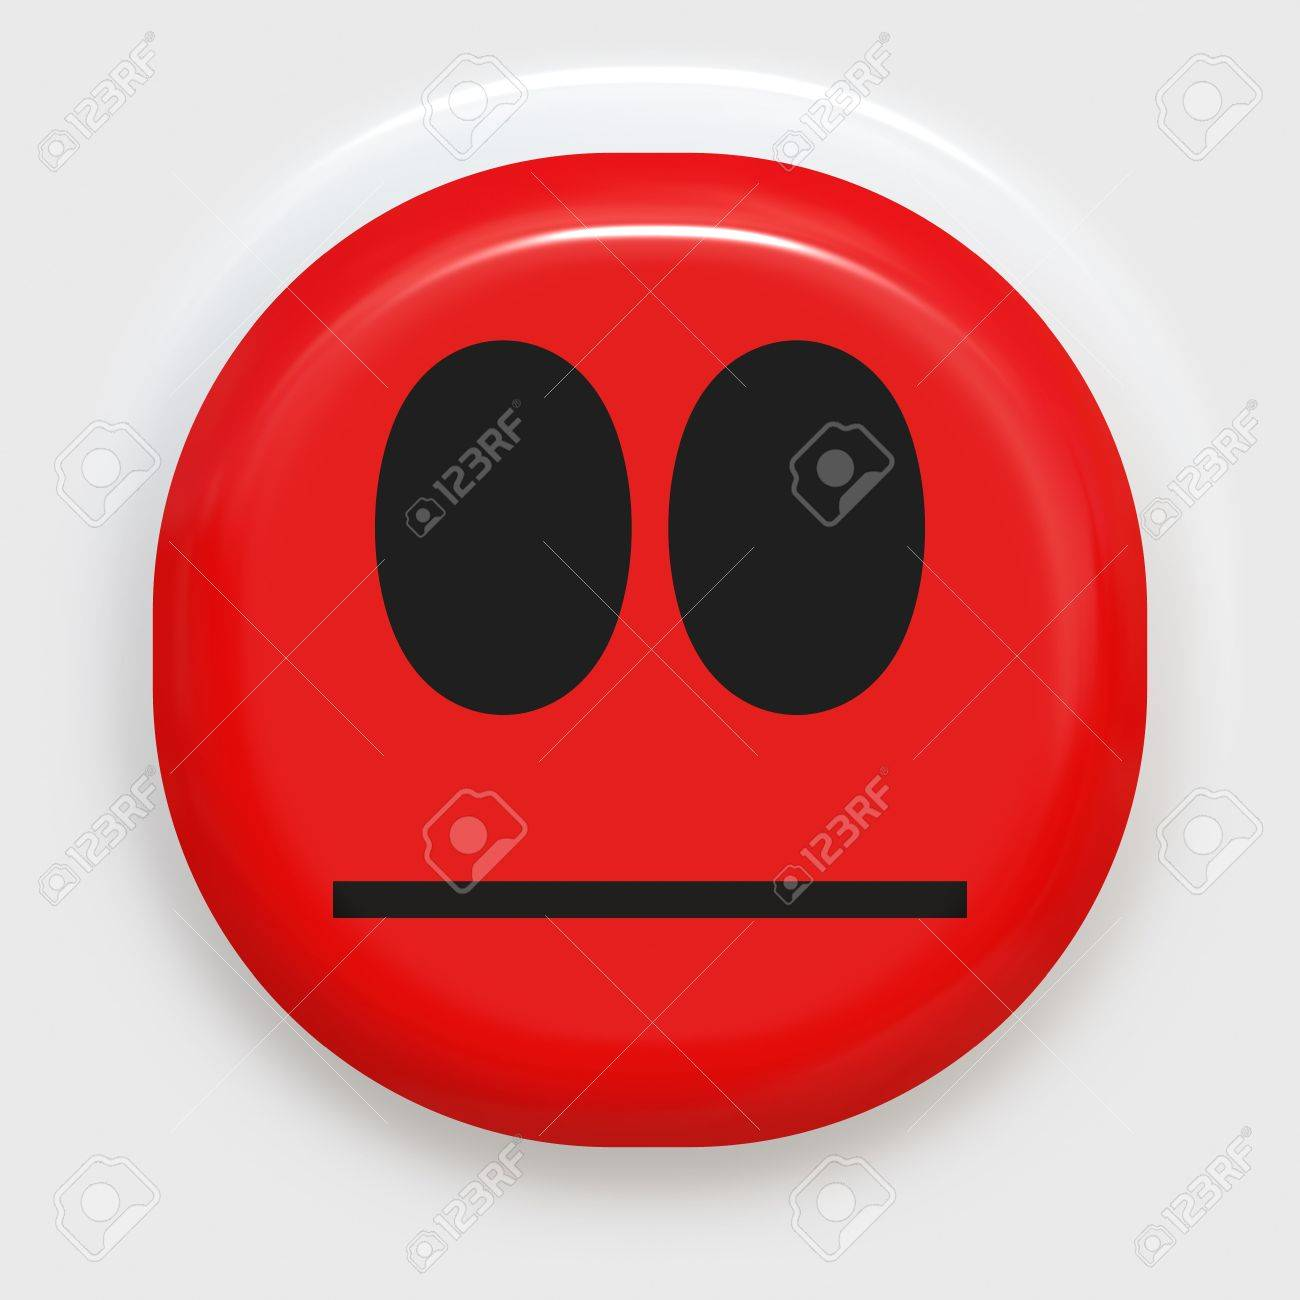 red smiley face looking angry or ashamed Stock Photo - 4749871